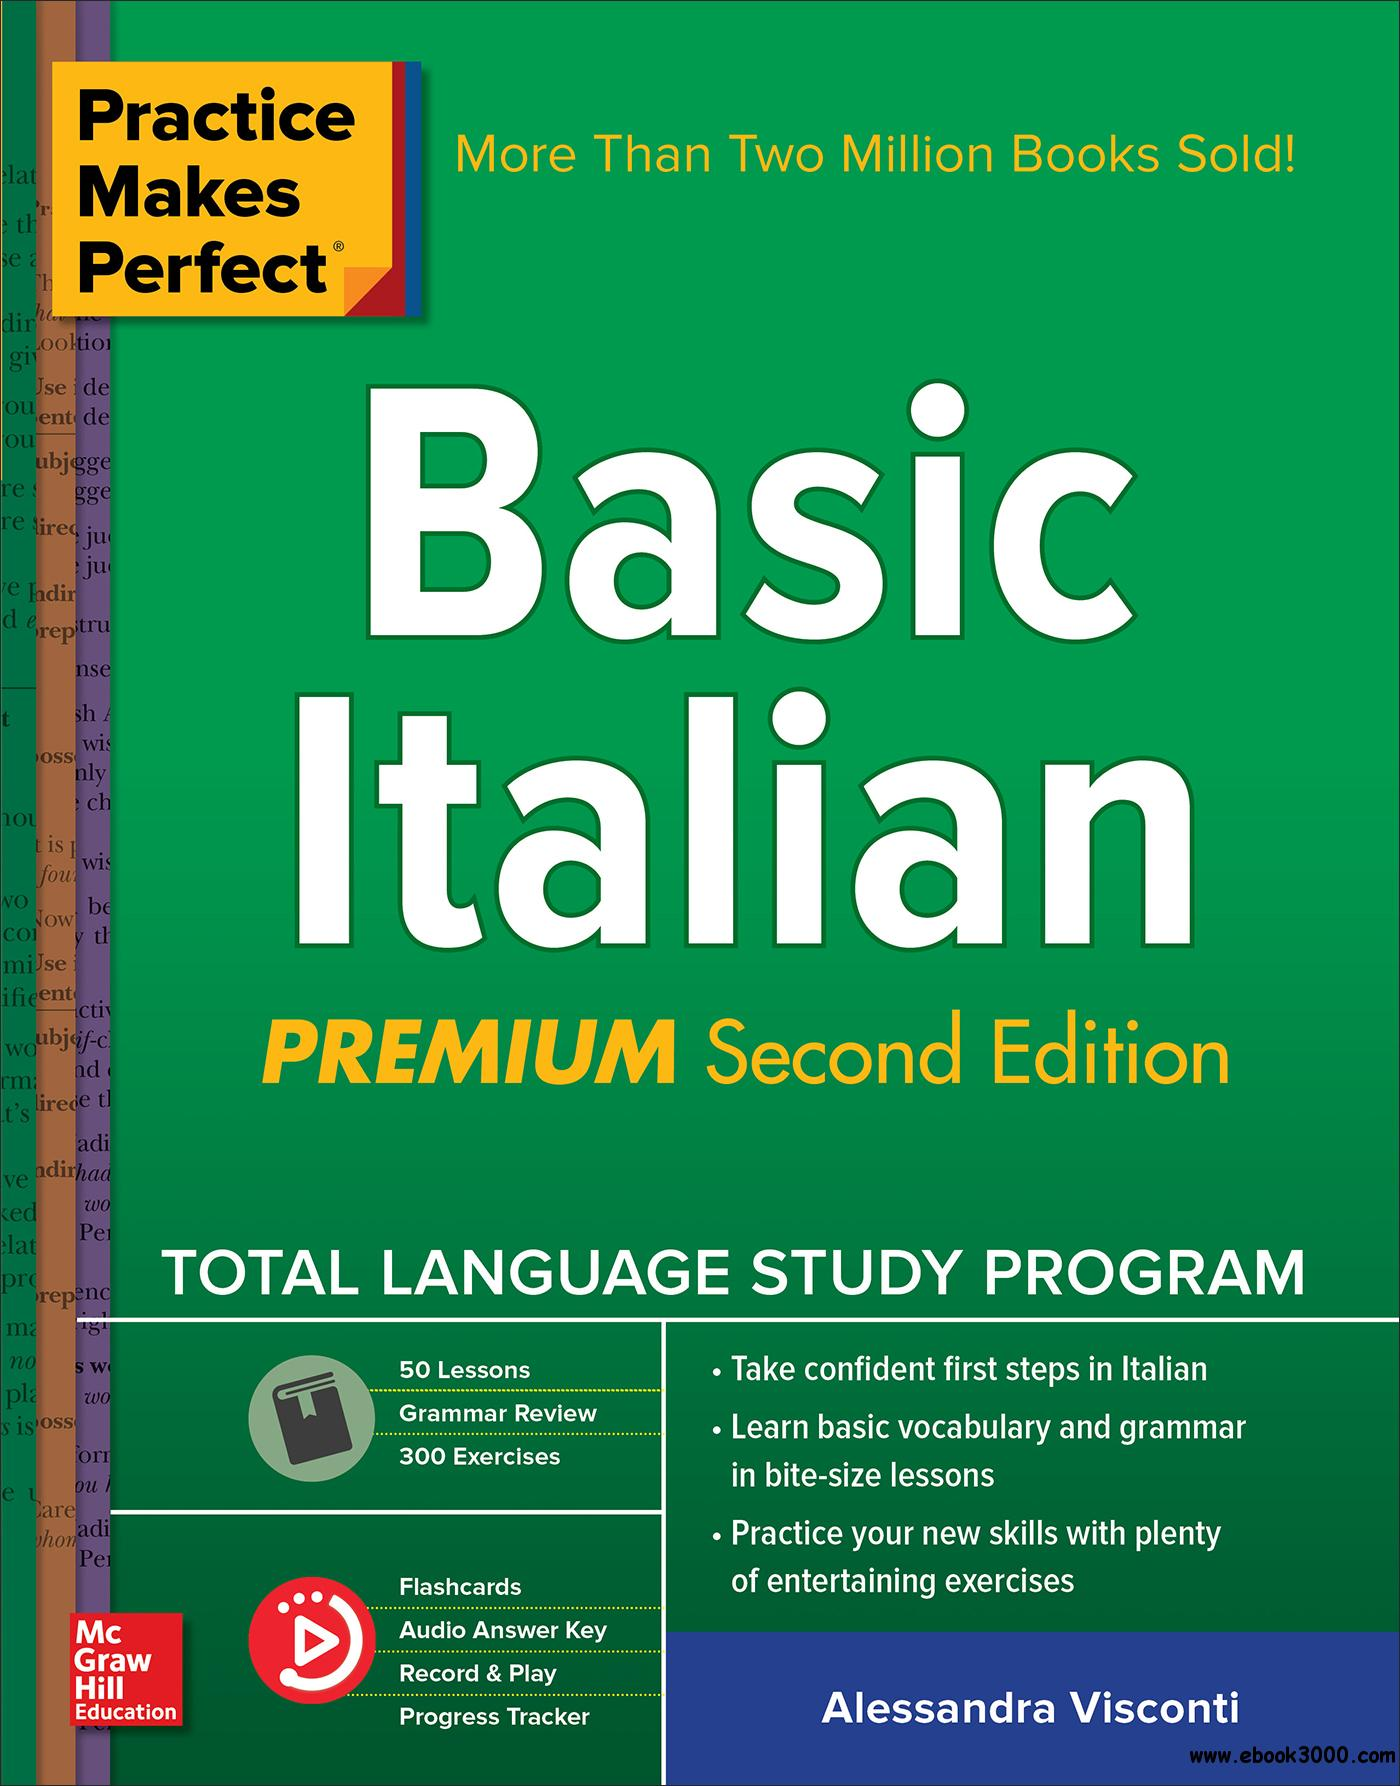 Practice Makes Perfect: Basic Italian, 2nd Edition